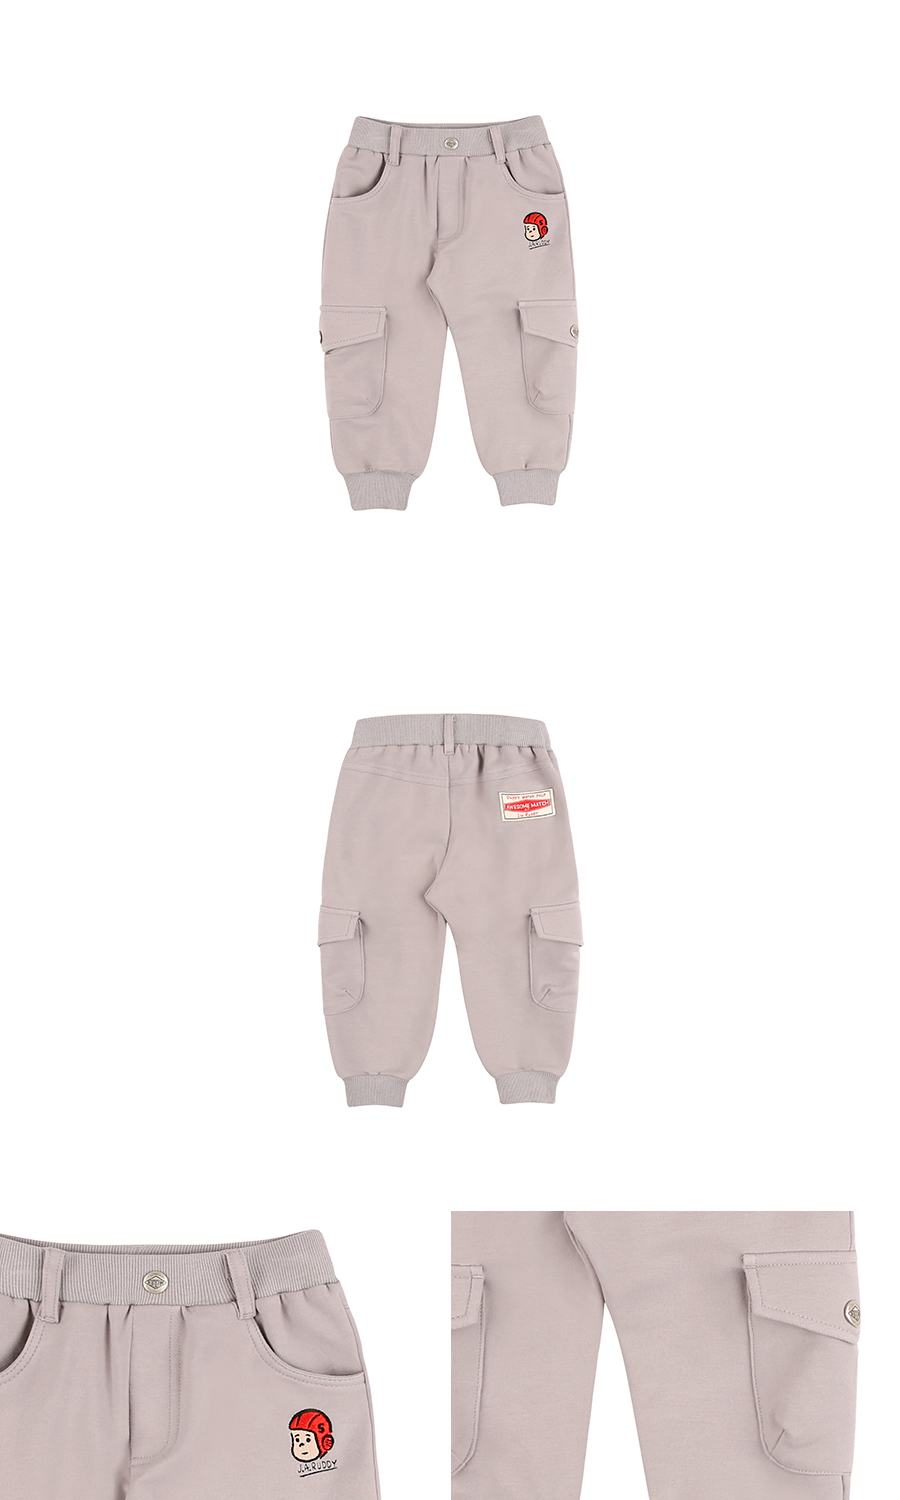 Ruddy baby out pocket pants 상세 이미지